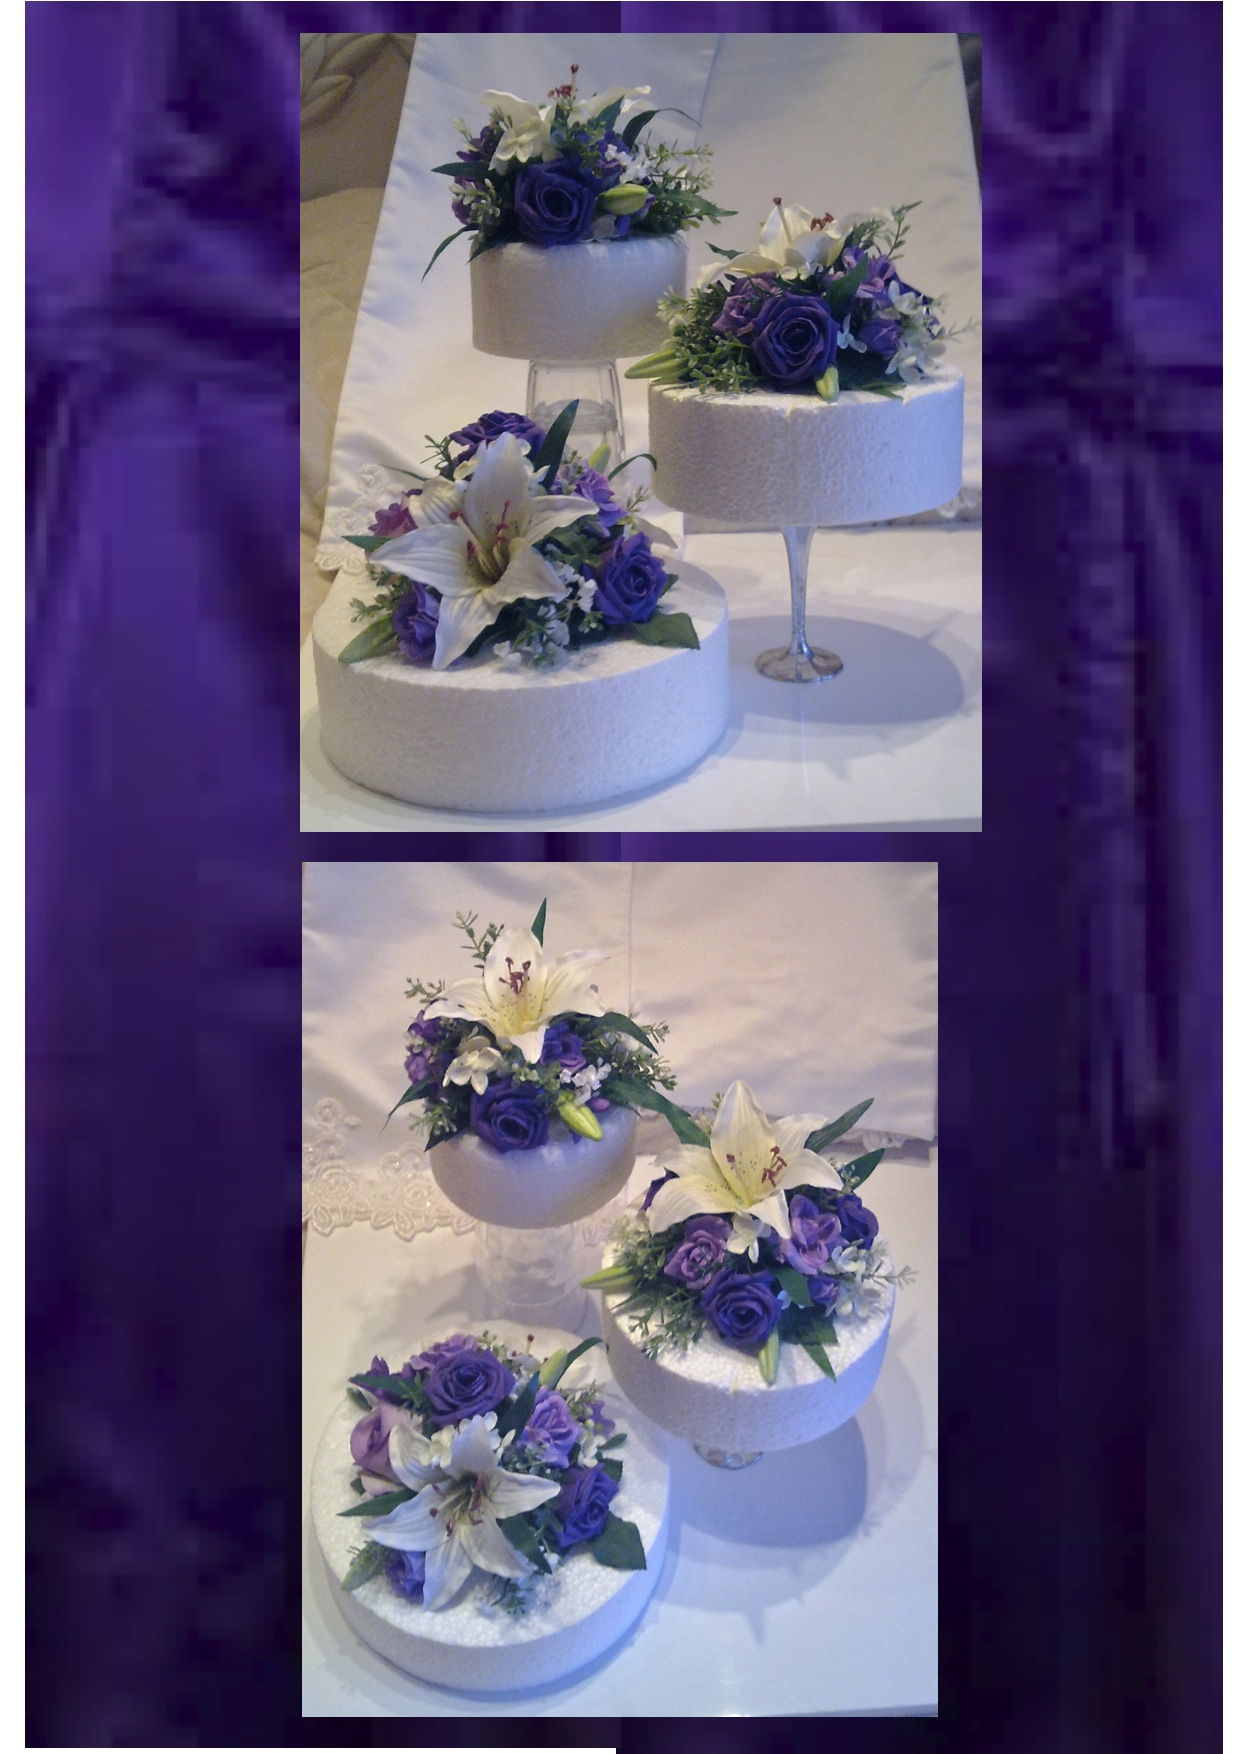 Lily Rose Cake Design : Cake Toppers The Floral Touch UK Cake Tier Displays